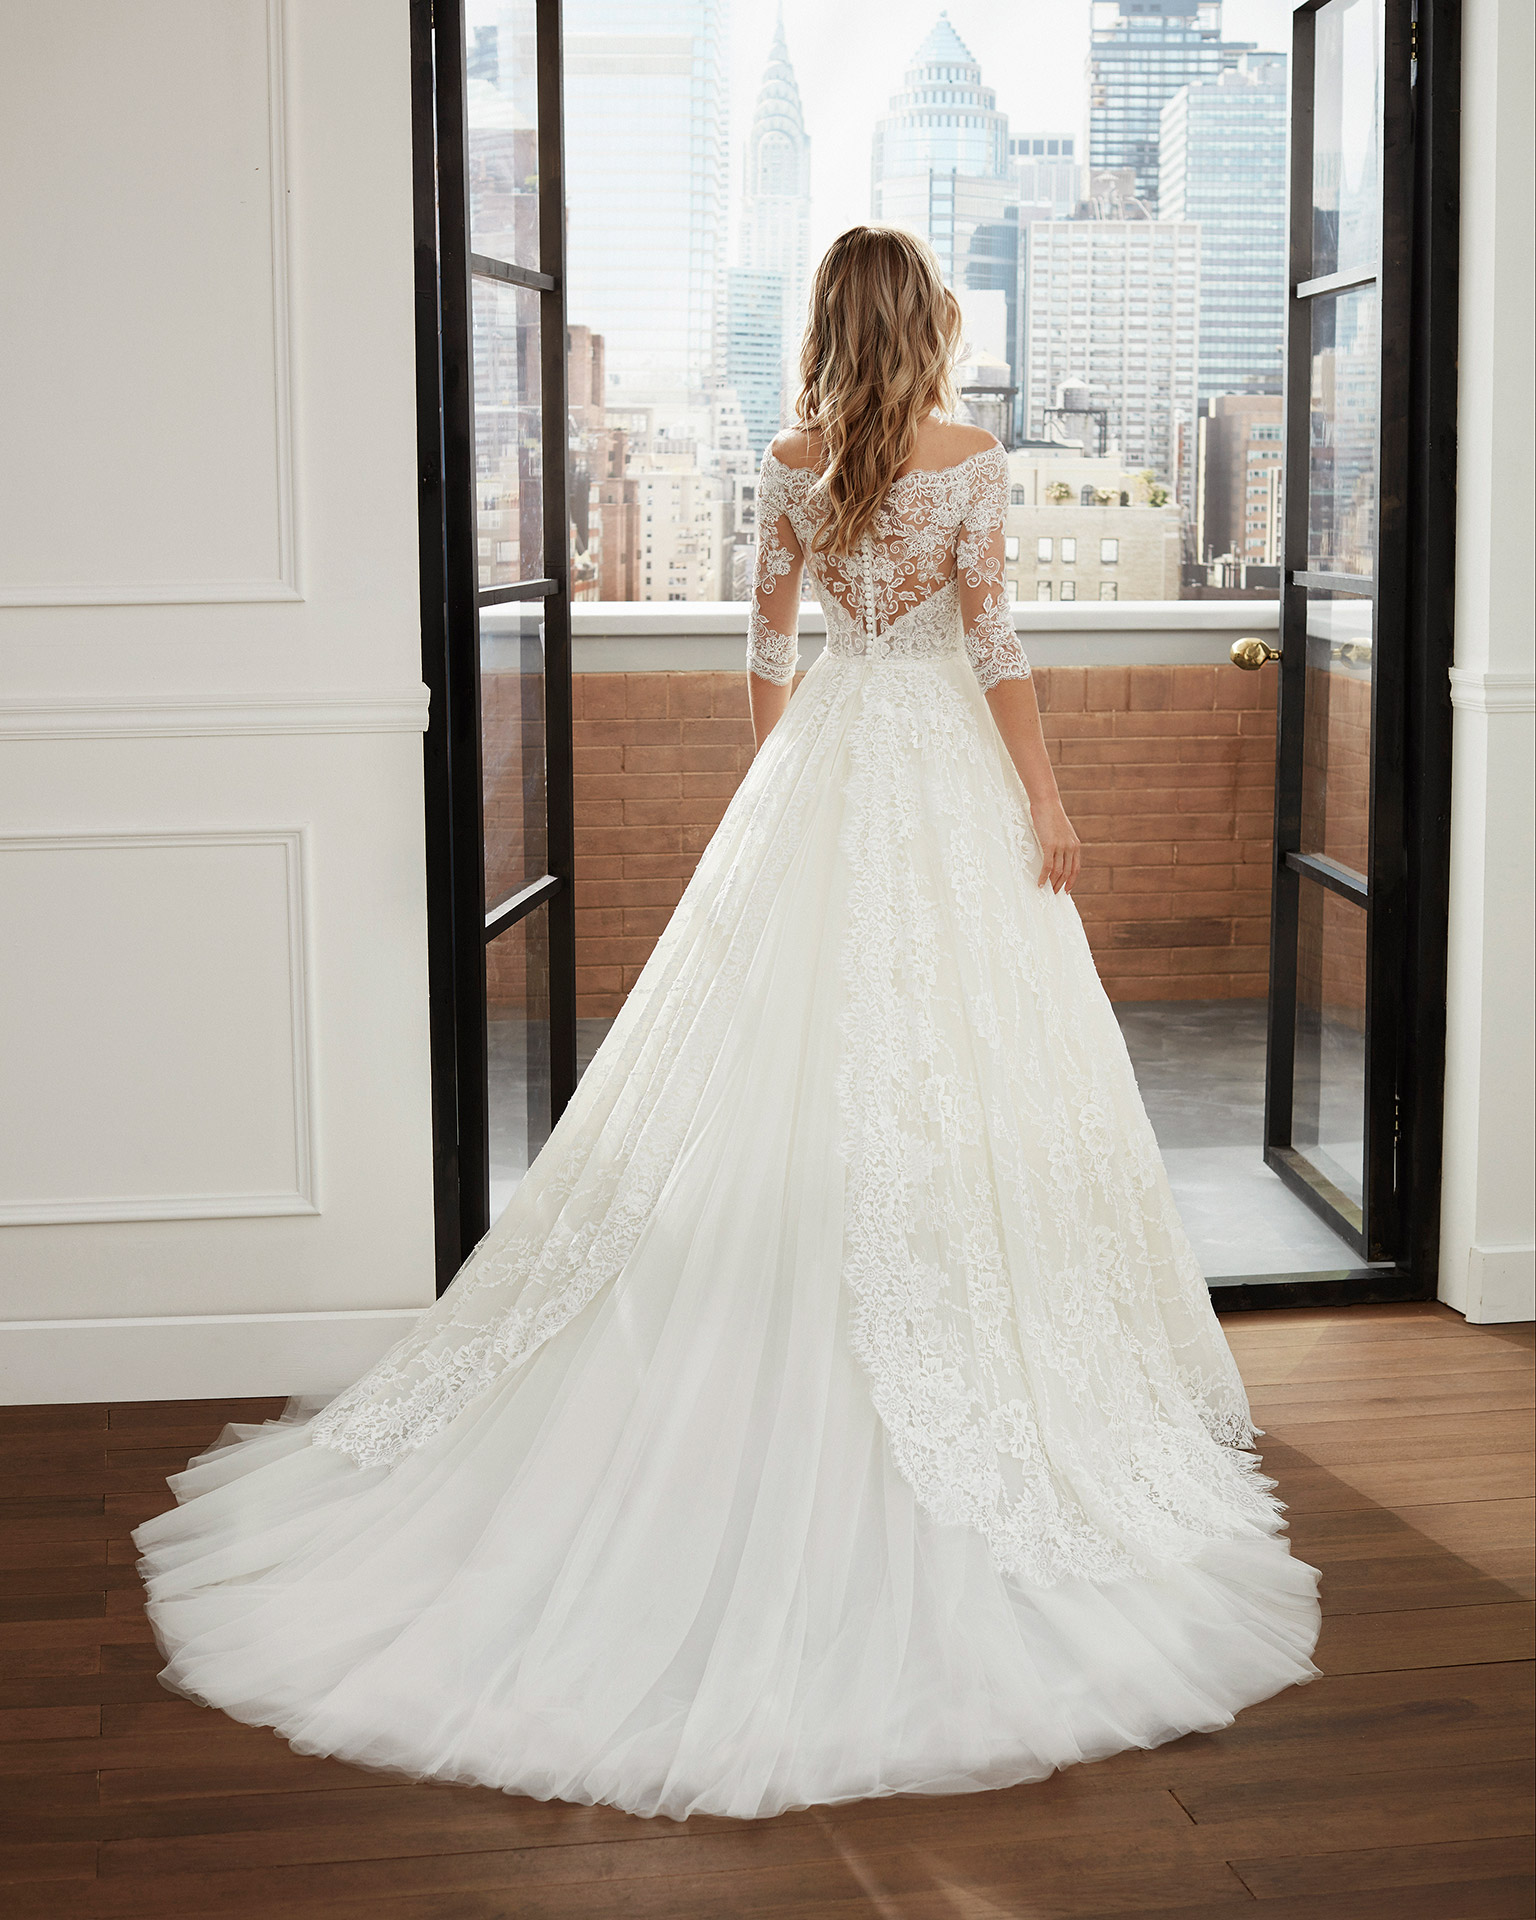 Princess-style wedding dress in lace and tulle with beading, off-the-shoulder neckline and full skirt. 2020  Collection.